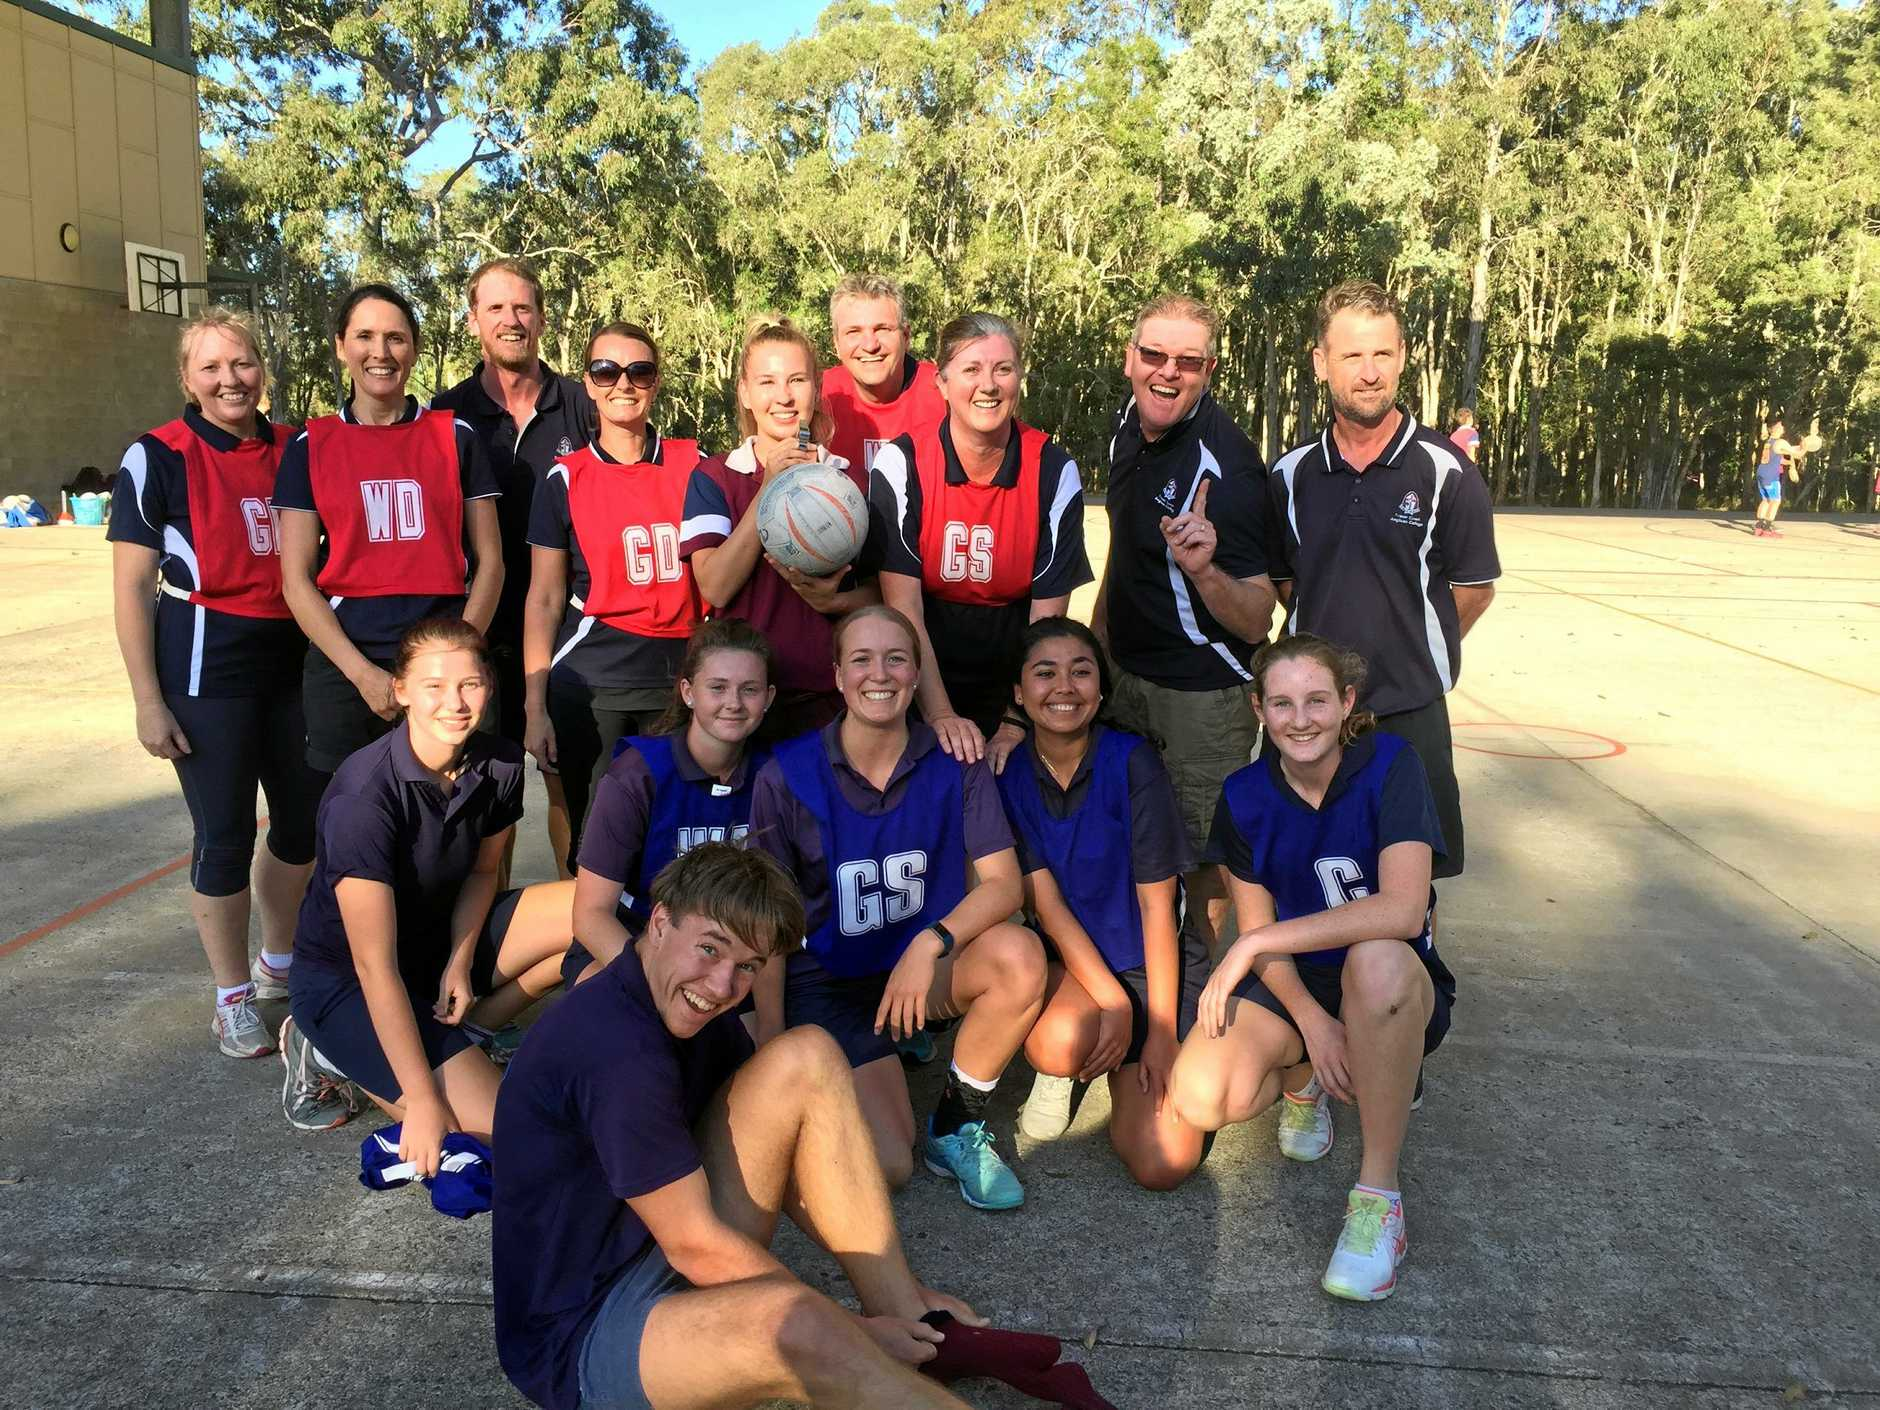 VOLUNTEER: Lesley Smith, inset and wearing sunglasses in the GD red bib, as part of the Staff v Students netball game held at the Fraser Coast Anglican College in 2018.